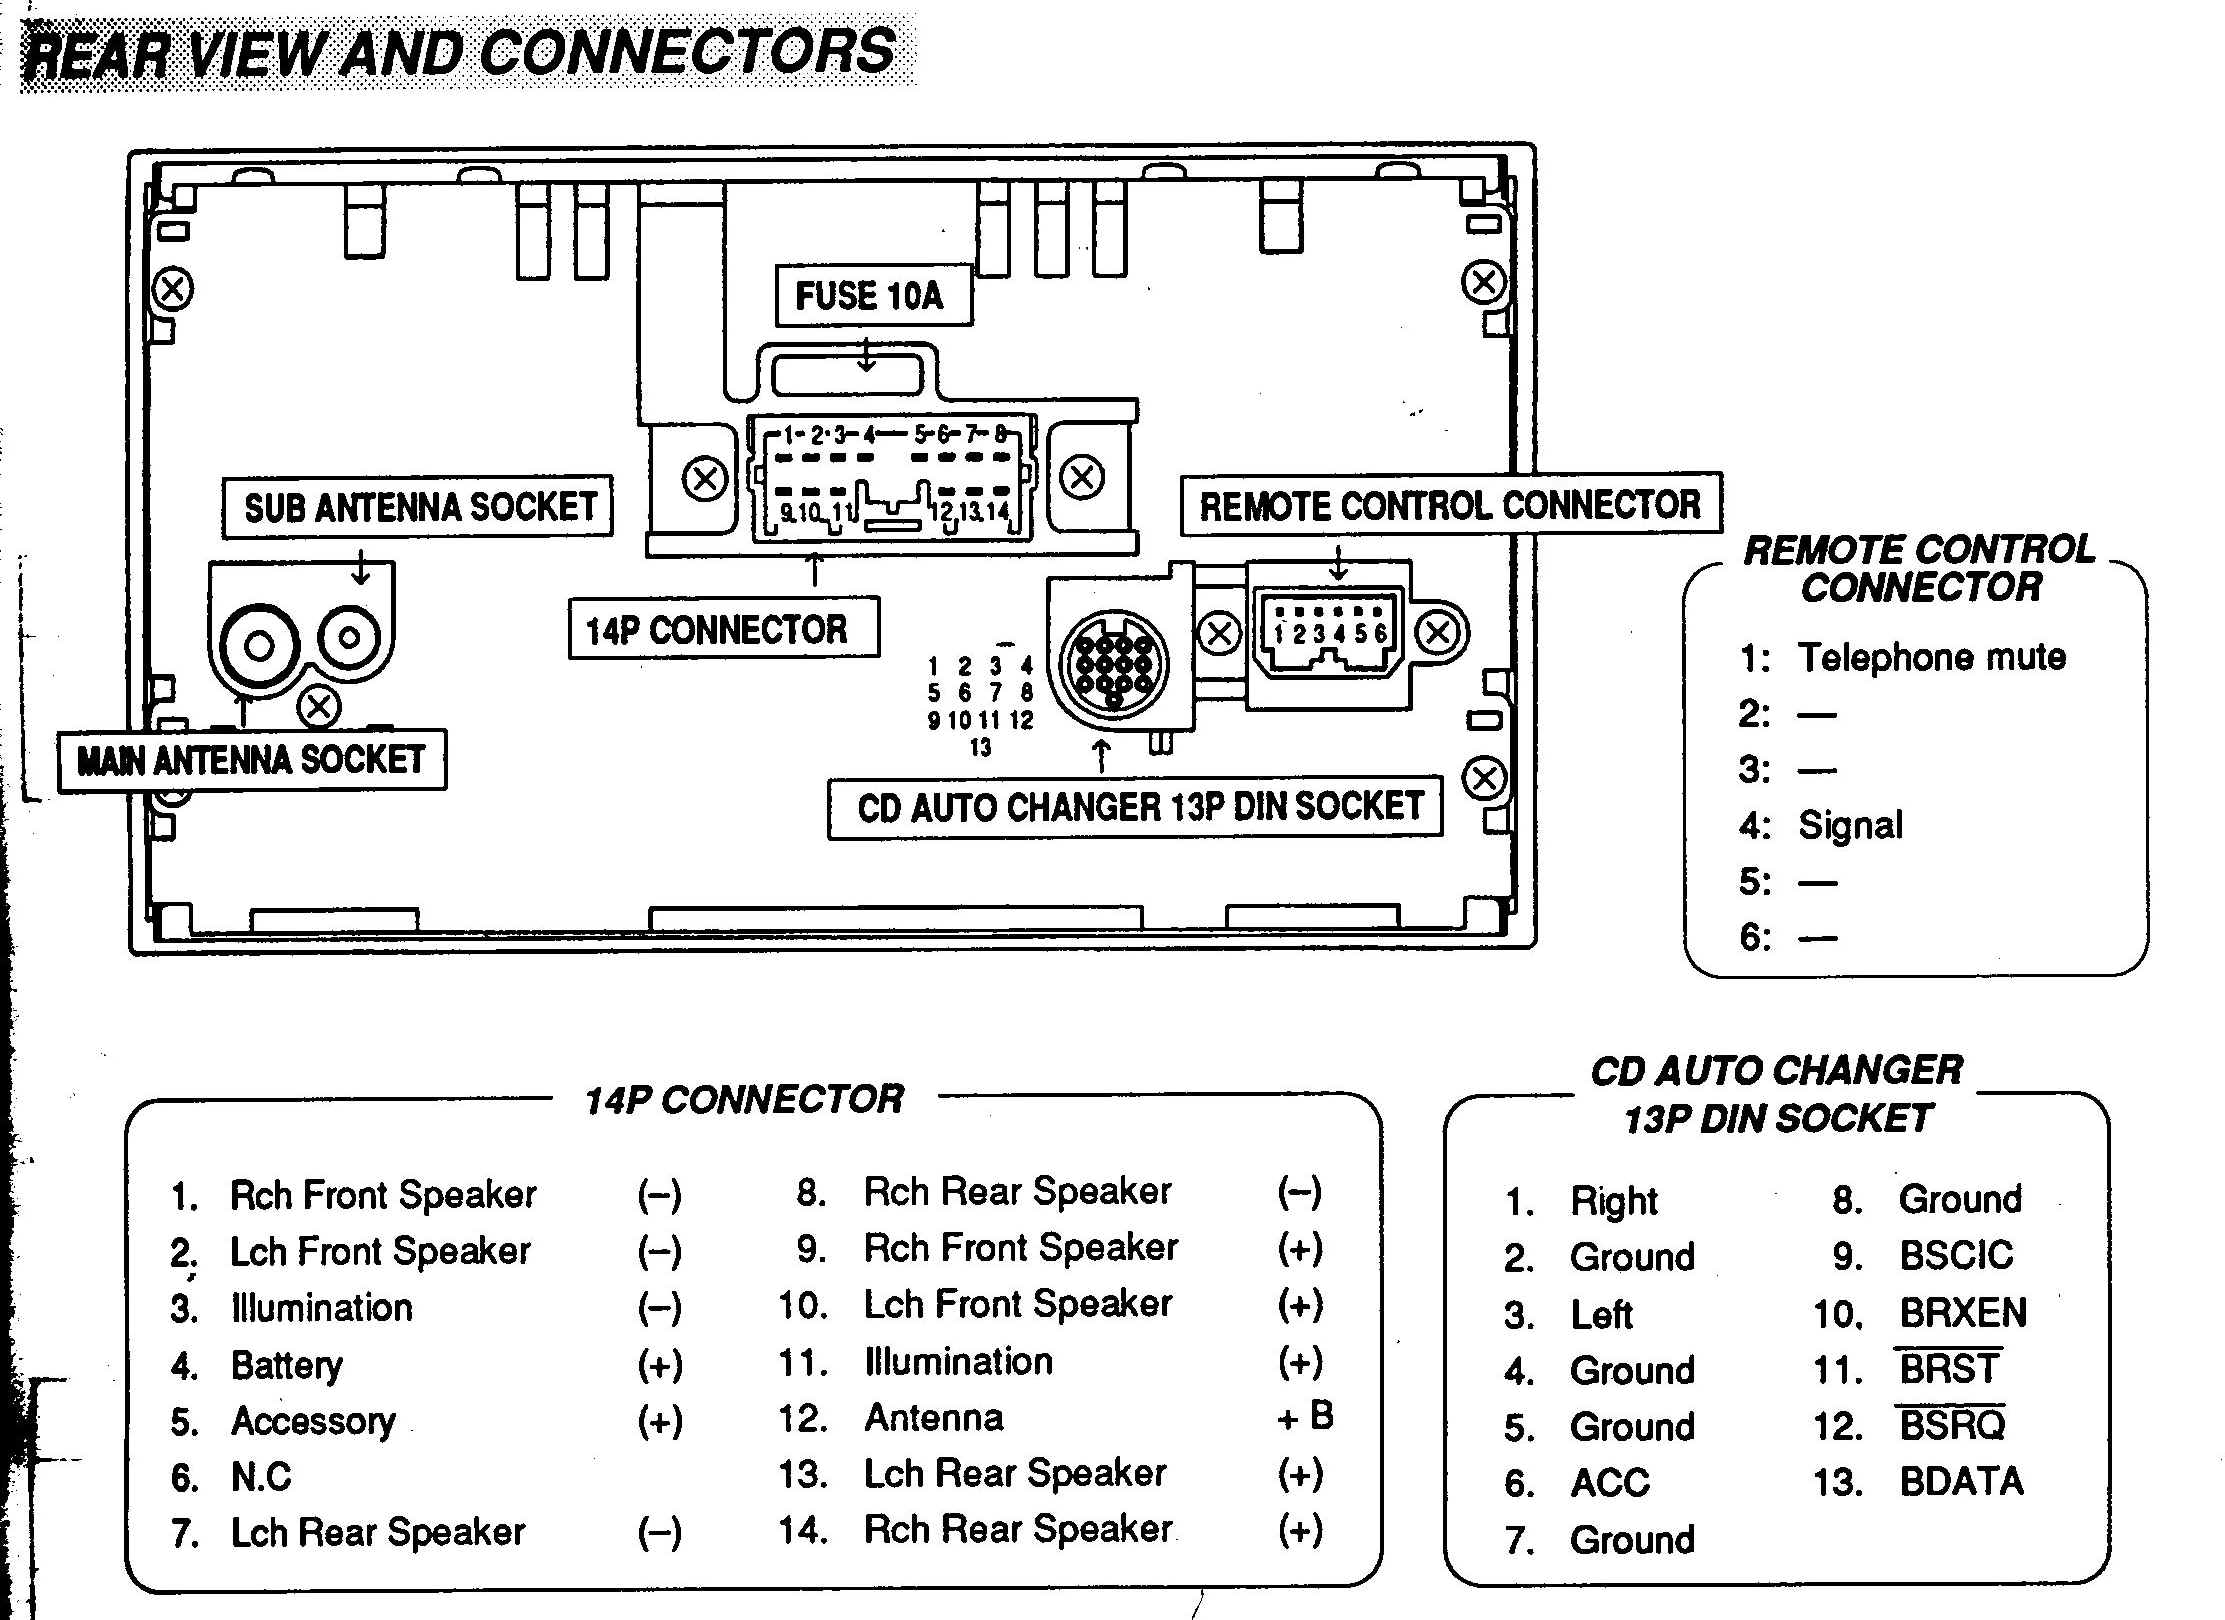 bose car stereo wiring diagrams basic wiring diagram u2022 rh dev spokeapartments com 2003 silverado bose radio wiring diagram 2004 nissan 350z bose radio wiring diagram